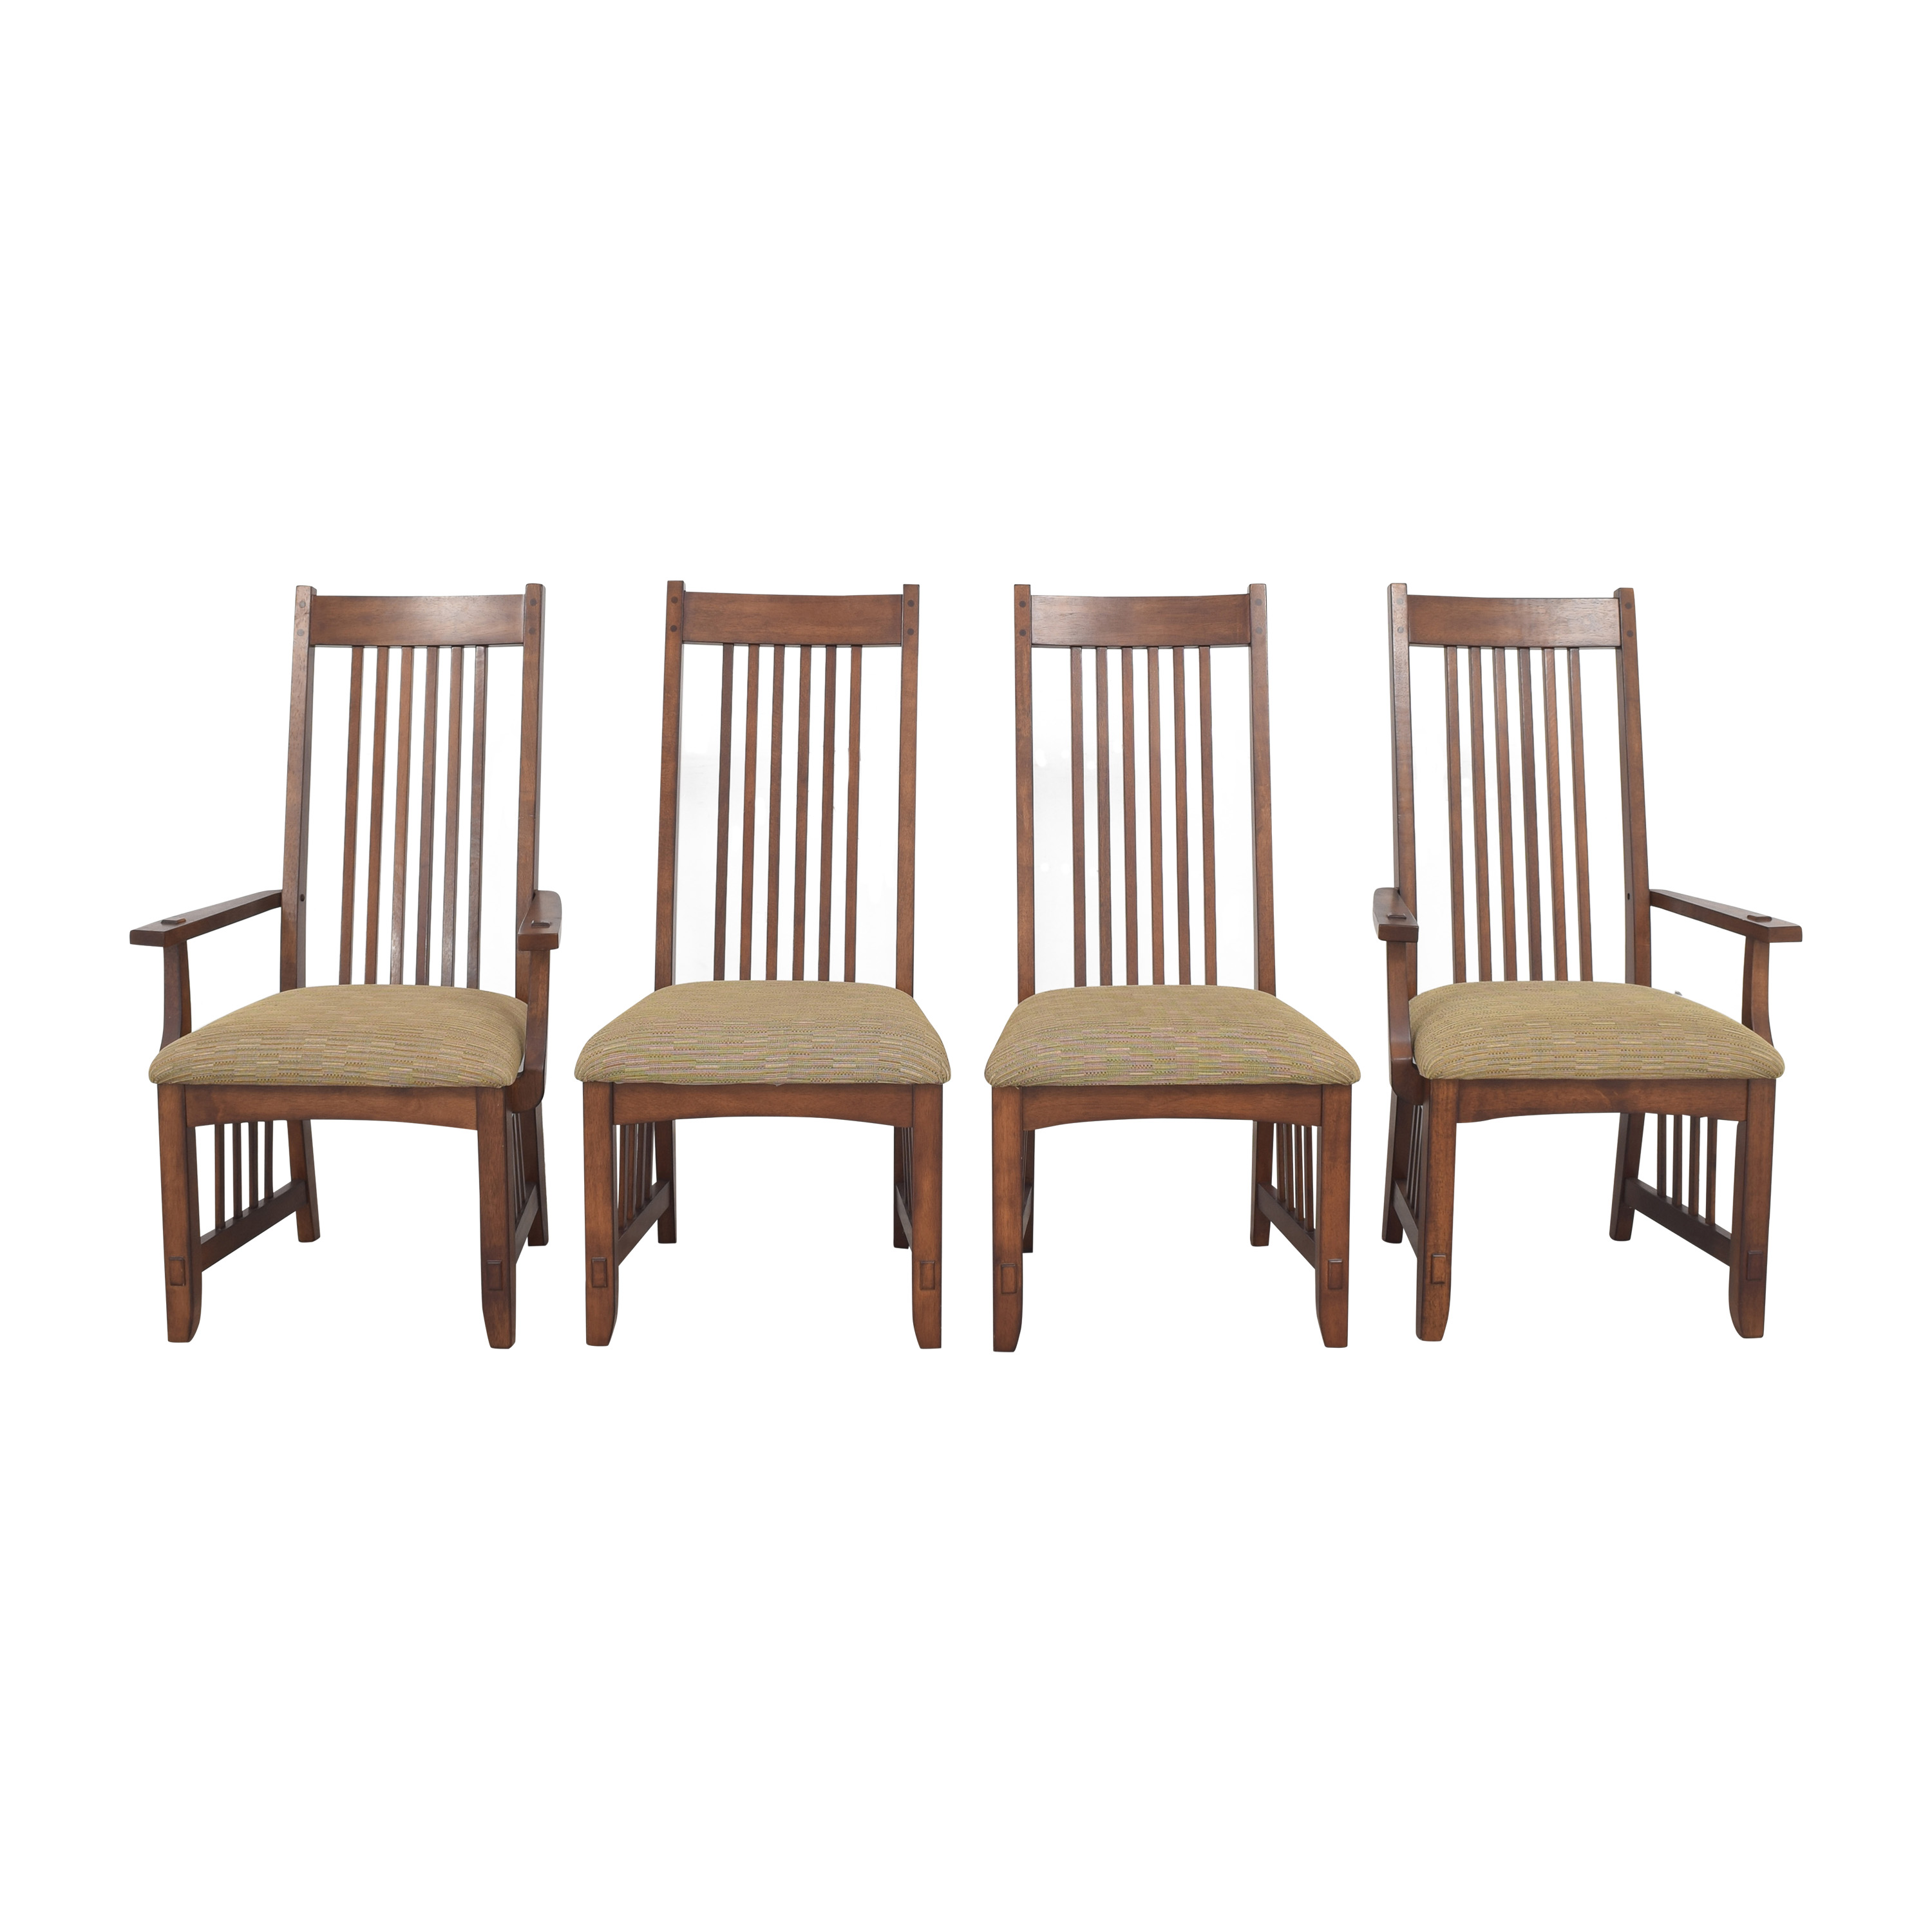 Green River Mission Style Dining Chairs / Dining Chairs